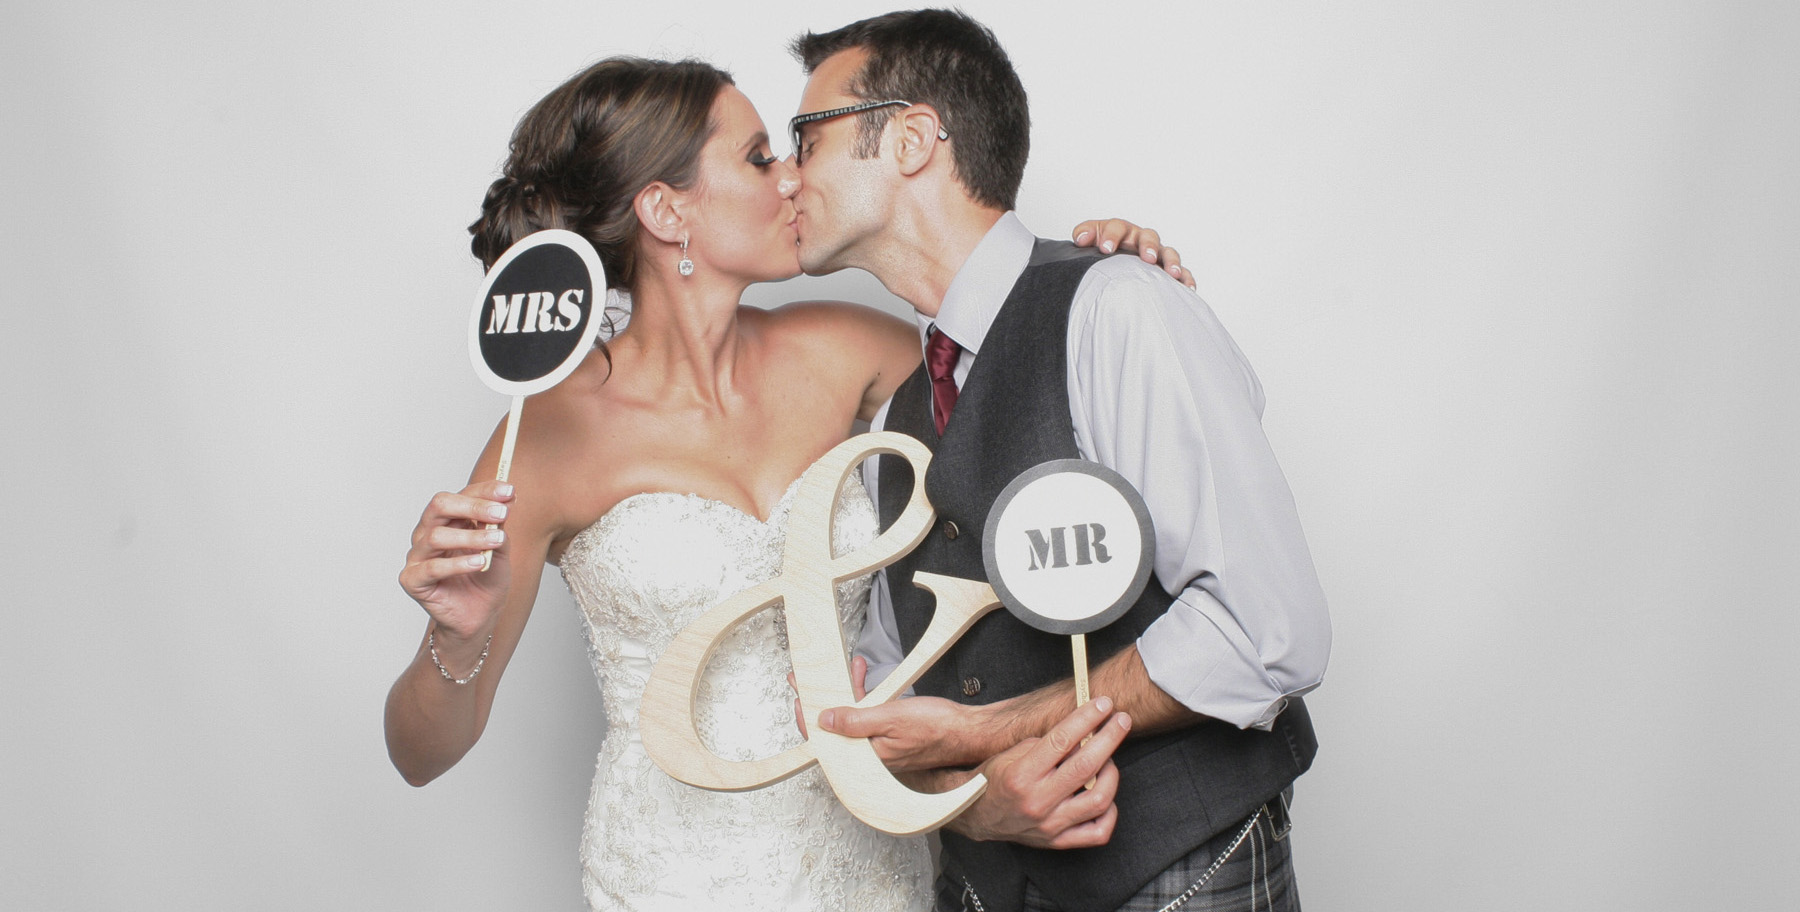 4853986Baltimore-Photo-Booth-Scottish-Wedding-Couple-Kissing